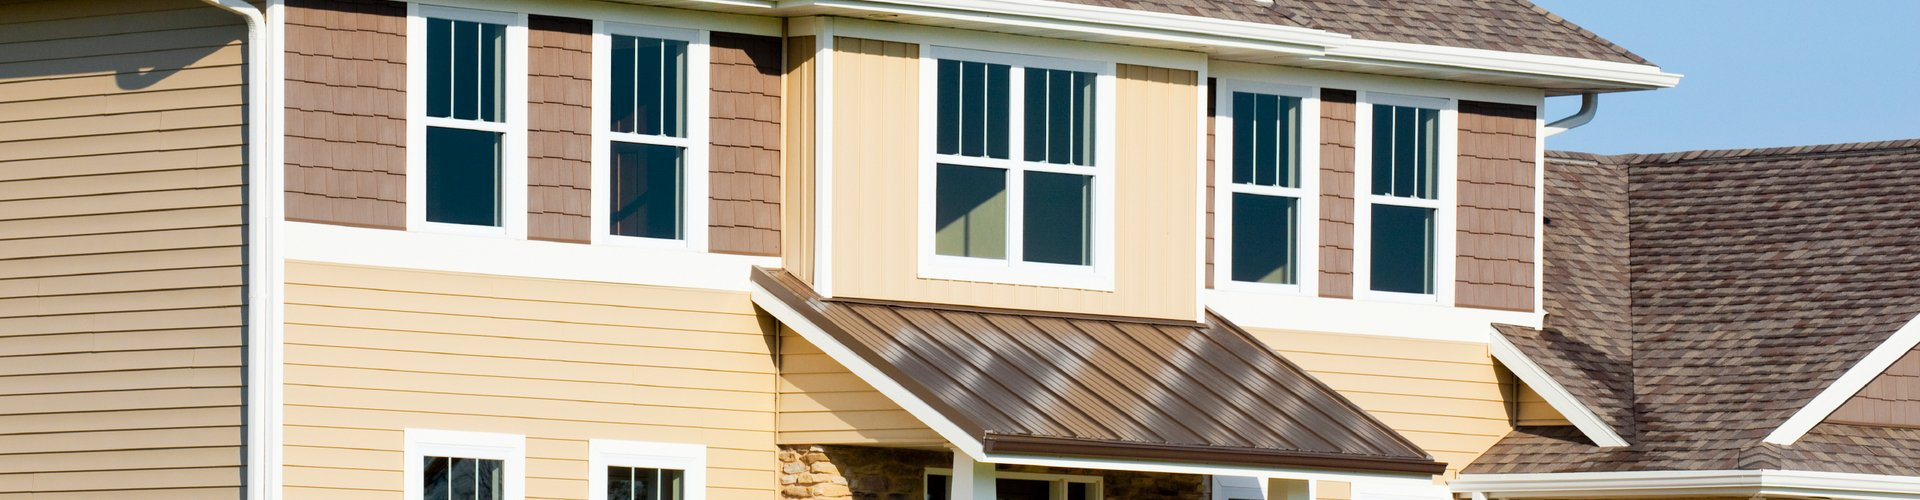 Western Siding | Idaho Siding Contractors - Replacement Windows ...